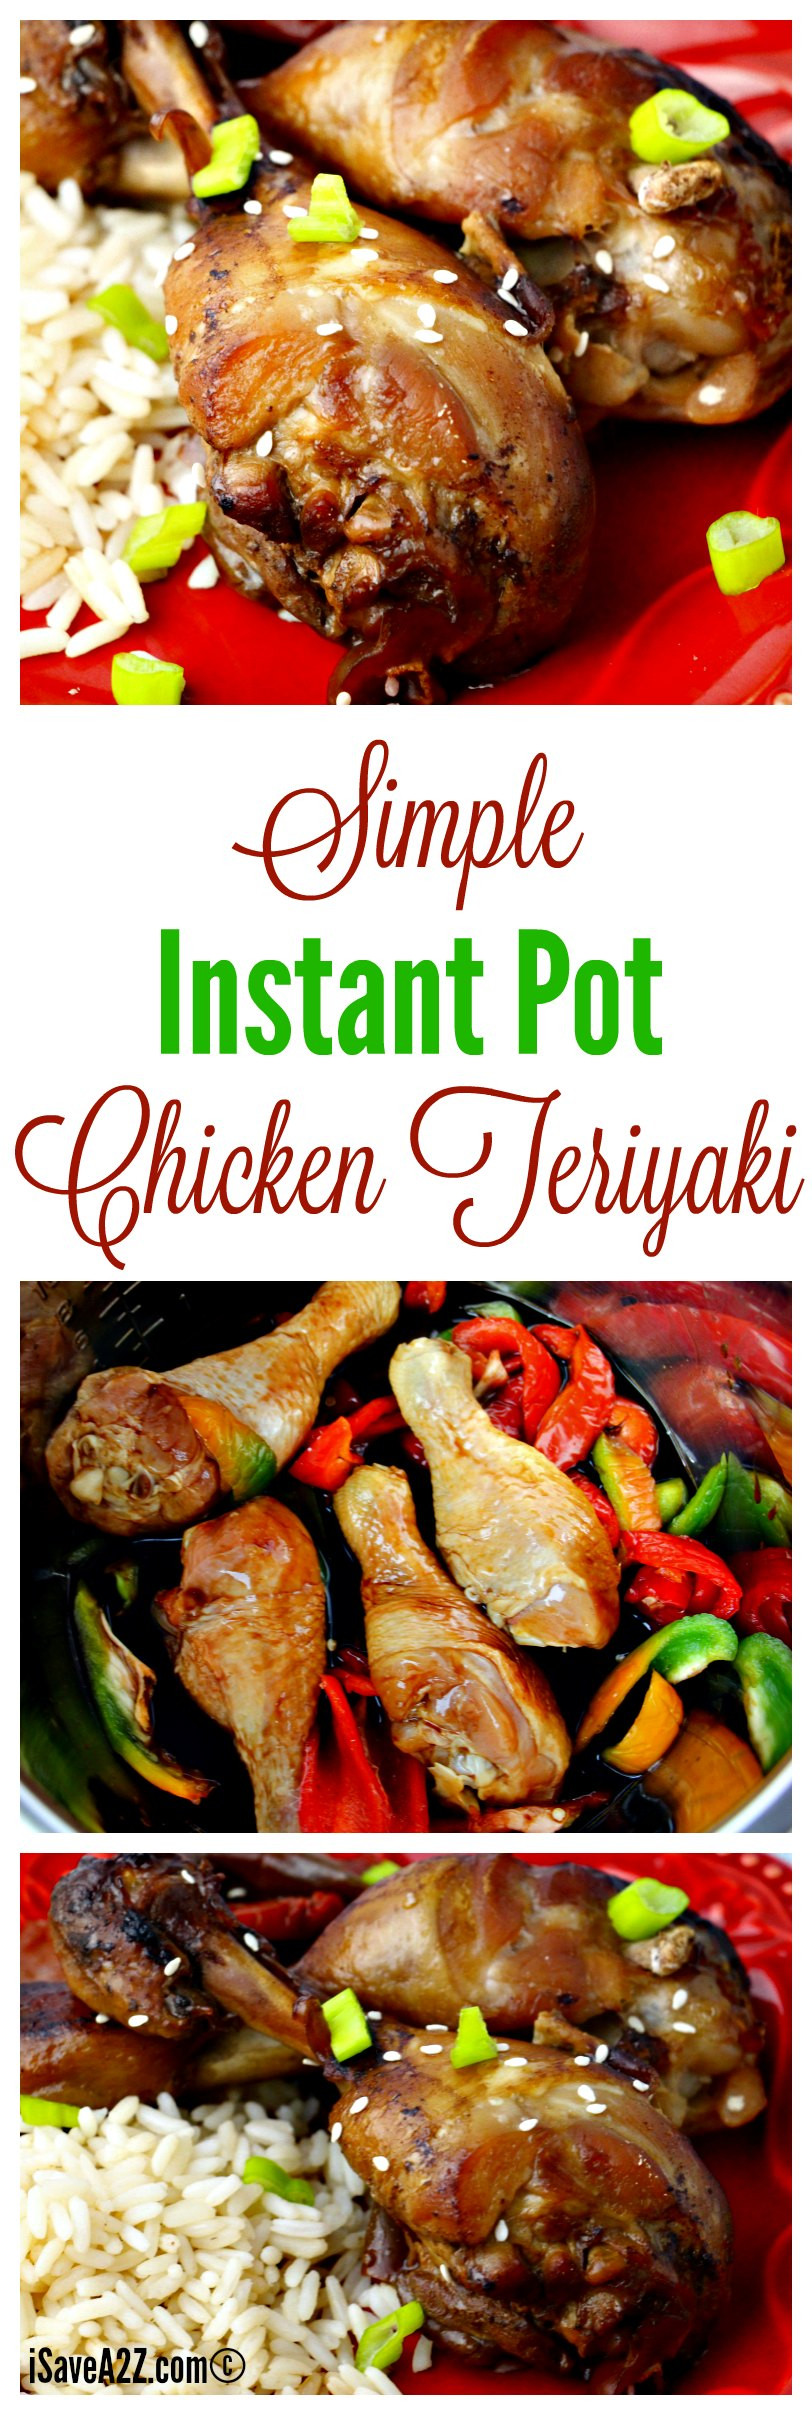 Simple Instant Pot Chicken Recipes  Simple Instant Pot Chicken Teriyaki Recipe iSaveA2Z